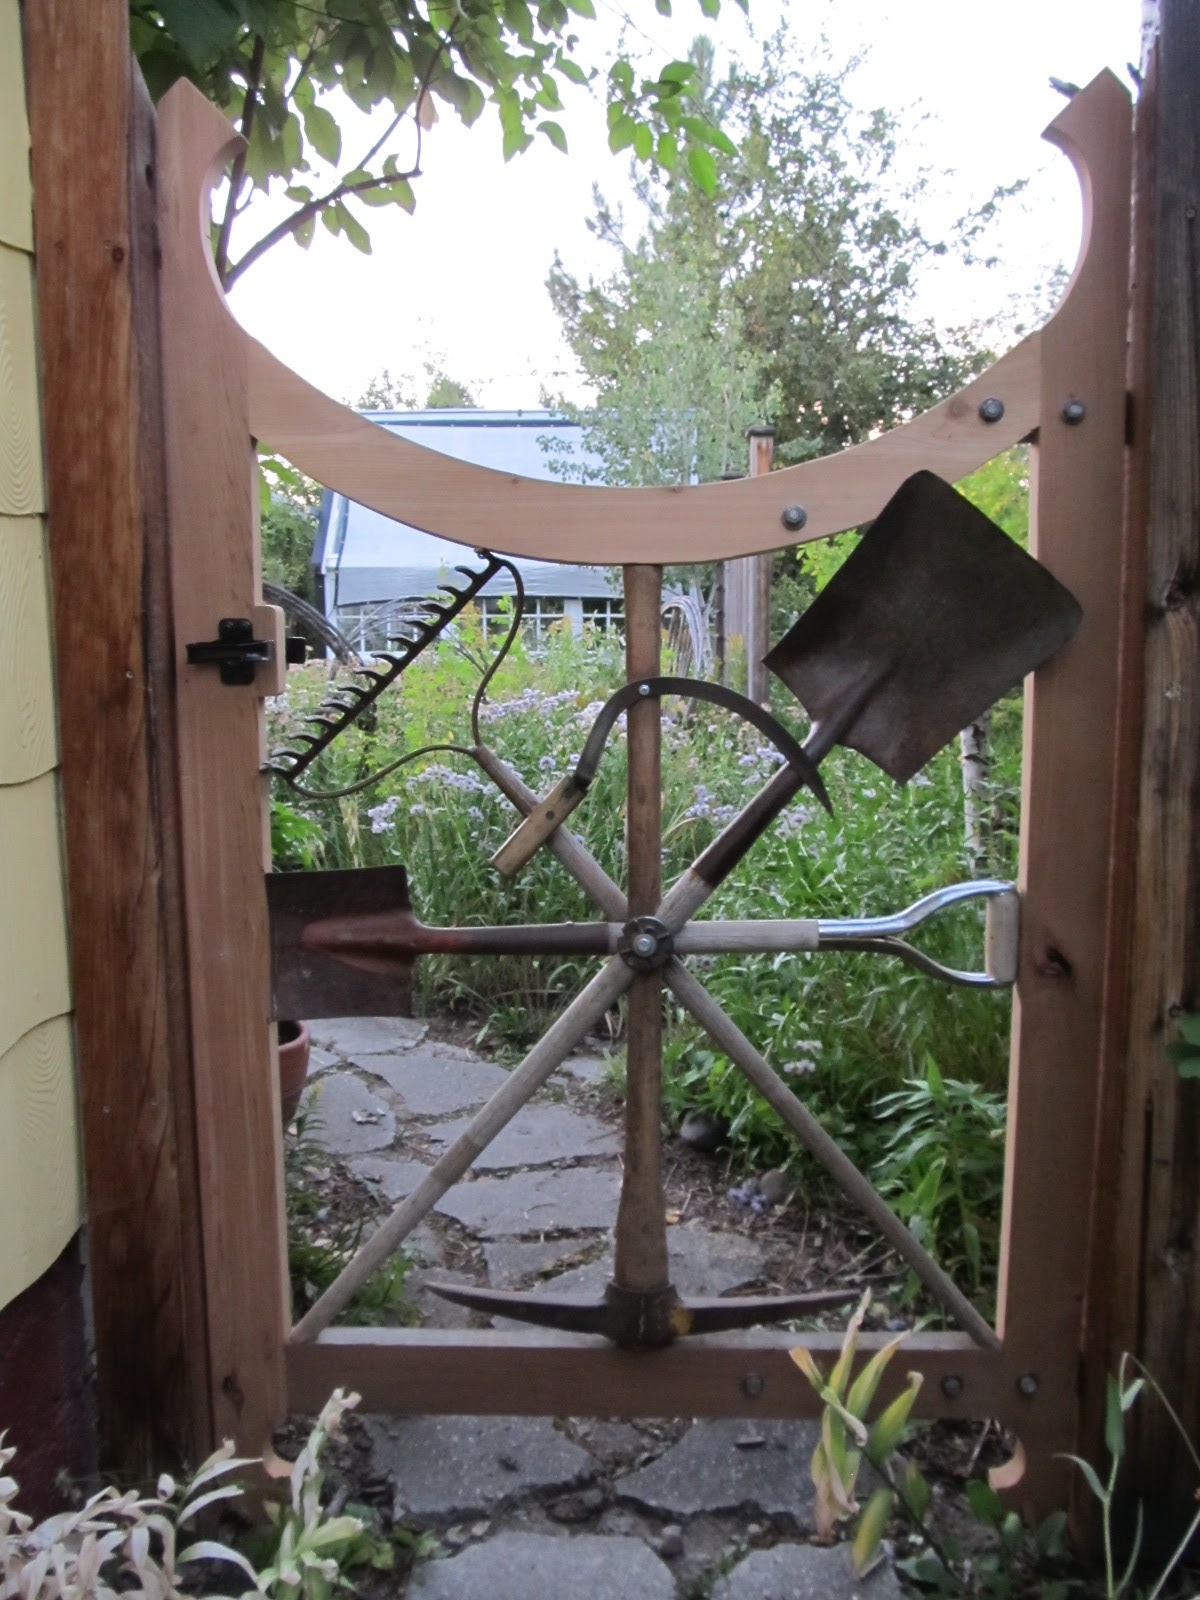 Montana wildlife gardener a repurposed garden tool for Gardening tools for 6 year old